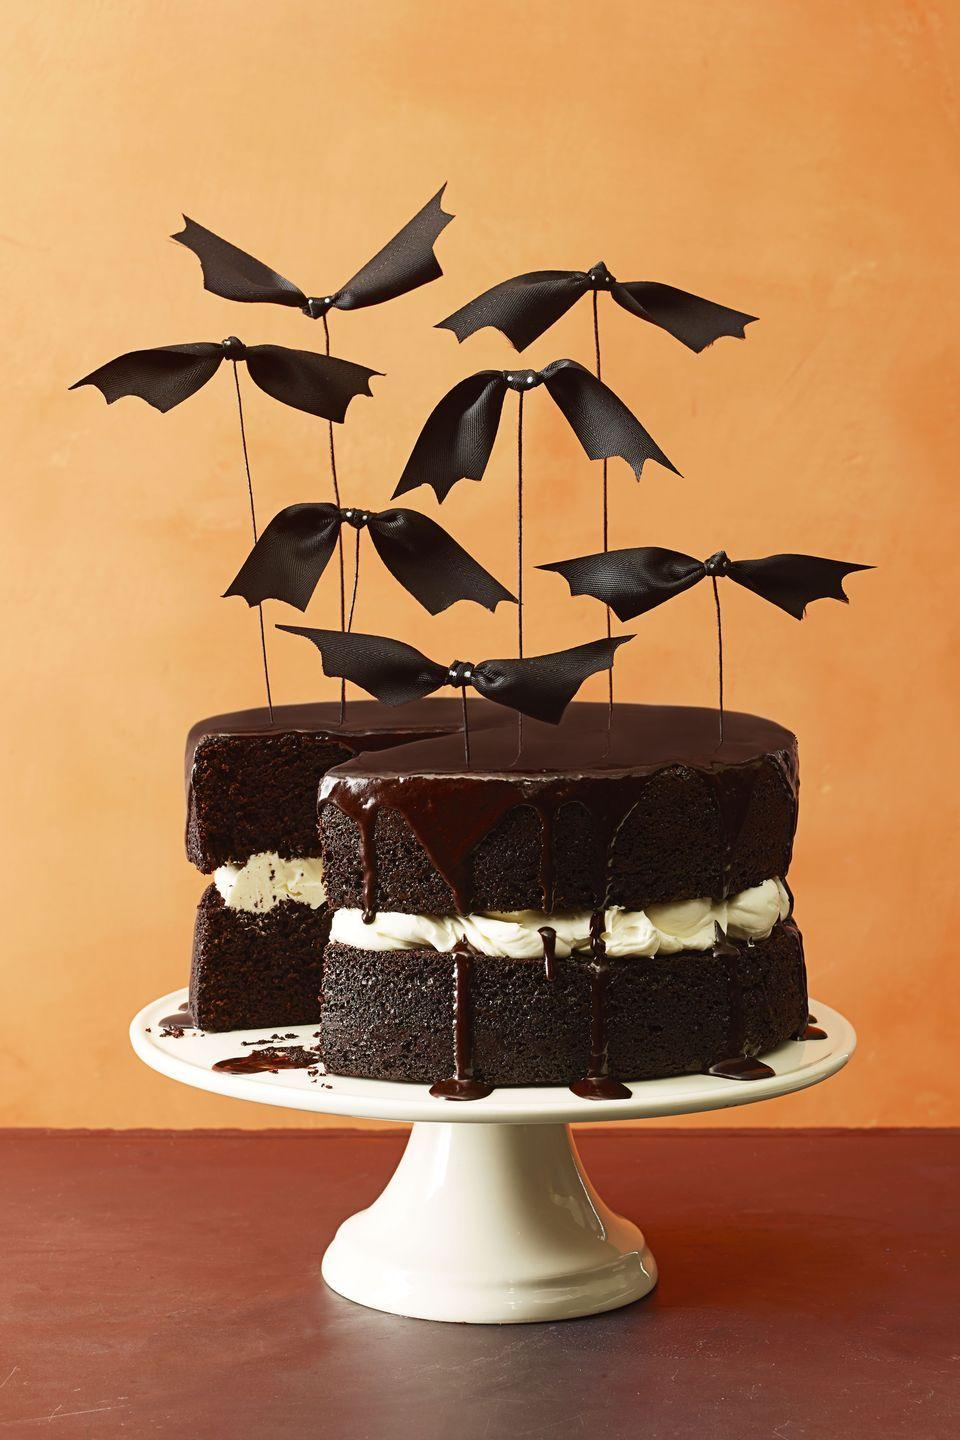 """<p>Give this layered chocolate cake an instant Halloween upgrade with centerpiece-worthy ribbon bats. </p><p><em><a href=""""https://www.goodhousekeeping.com/food-recipes/a16014/chocolate-pumpkin-cake-recipe-ghk1014/"""" rel=""""nofollow noopener"""" target=""""_blank"""" data-ylk=""""slk:Get the recipe for Chocolate Pumpkin Cake »"""" class=""""link rapid-noclick-resp"""">Get the recipe for Chocolate Pumpkin Cake »</a></em></p><p><strong>RELATED: </strong><a href=""""https://www.goodhousekeeping.com/food-recipes/g3639/best-pumpkin-recipes/"""" rel=""""nofollow noopener"""" target=""""_blank"""" data-ylk=""""slk:43 Sweet and Savory Pumpkin Recipes to Make This Fall"""" class=""""link rapid-noclick-resp"""">43 Sweet and Savory Pumpkin Recipes to Make This Fall</a></p>"""